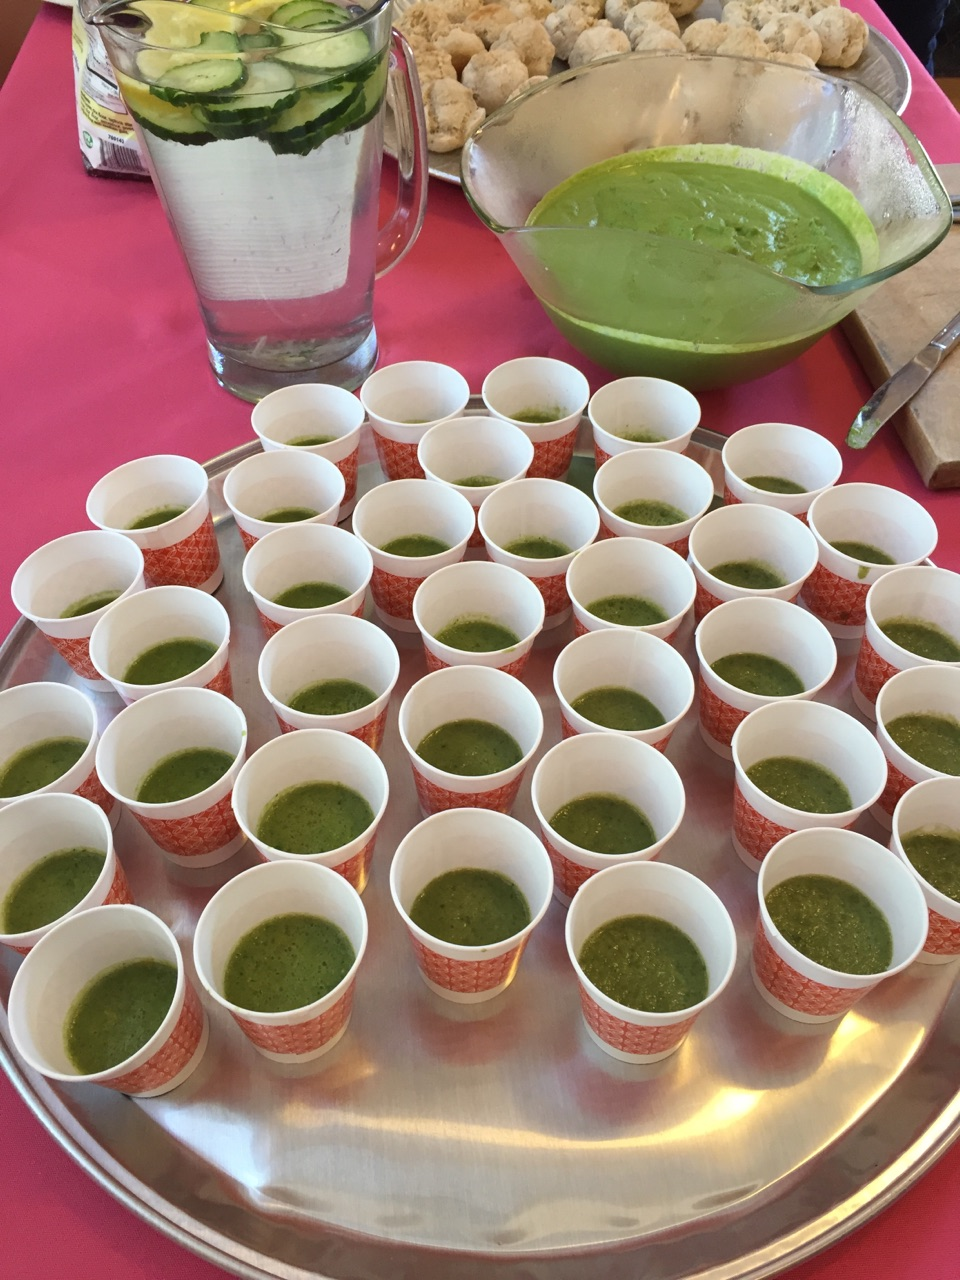 Samples of shared recipes included green smoothies, parsley dip and gluten-free yeast rolls we're served and savored by all who attended.